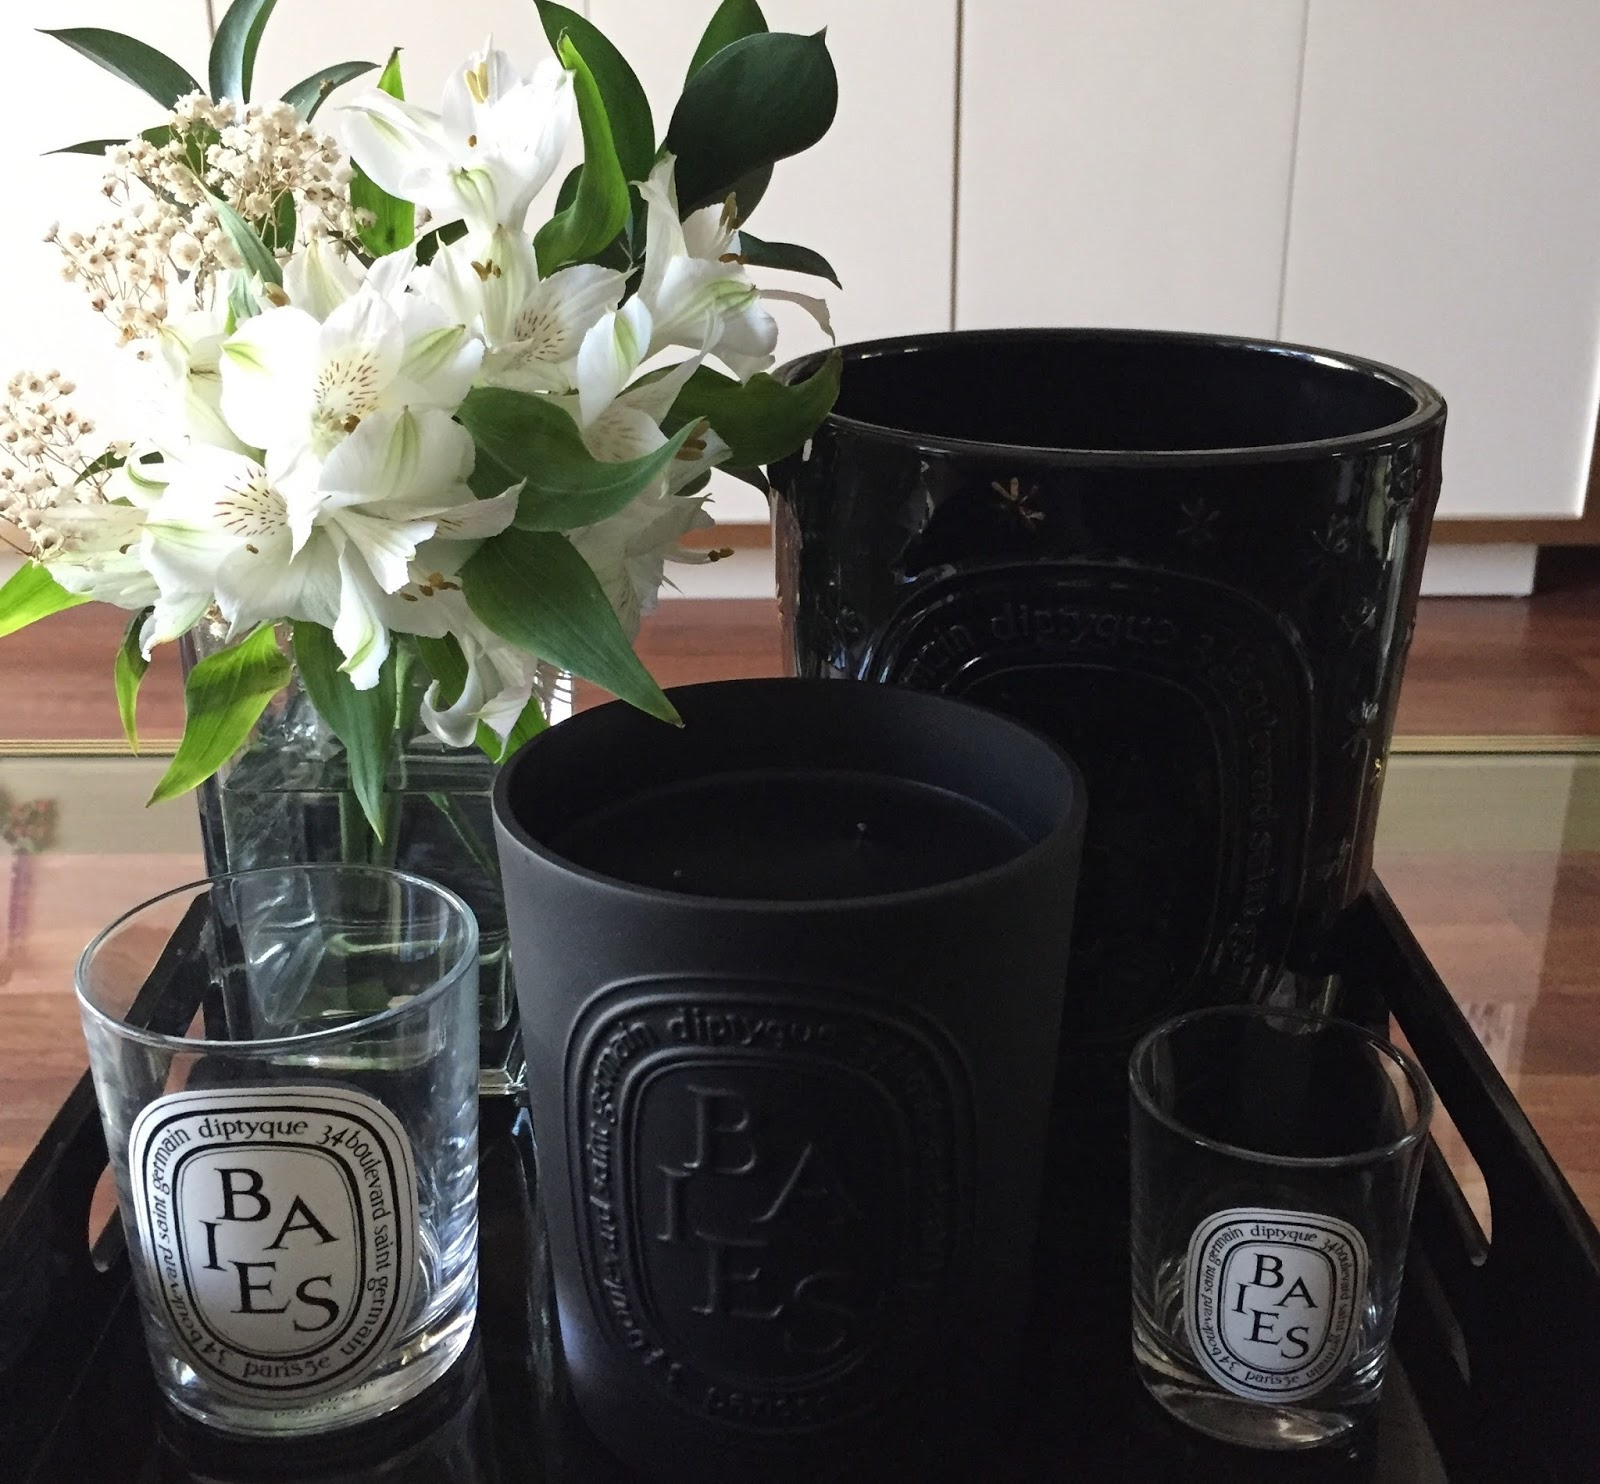 Diptyque: New Baies 600g 3-Wick Candle - of the comely